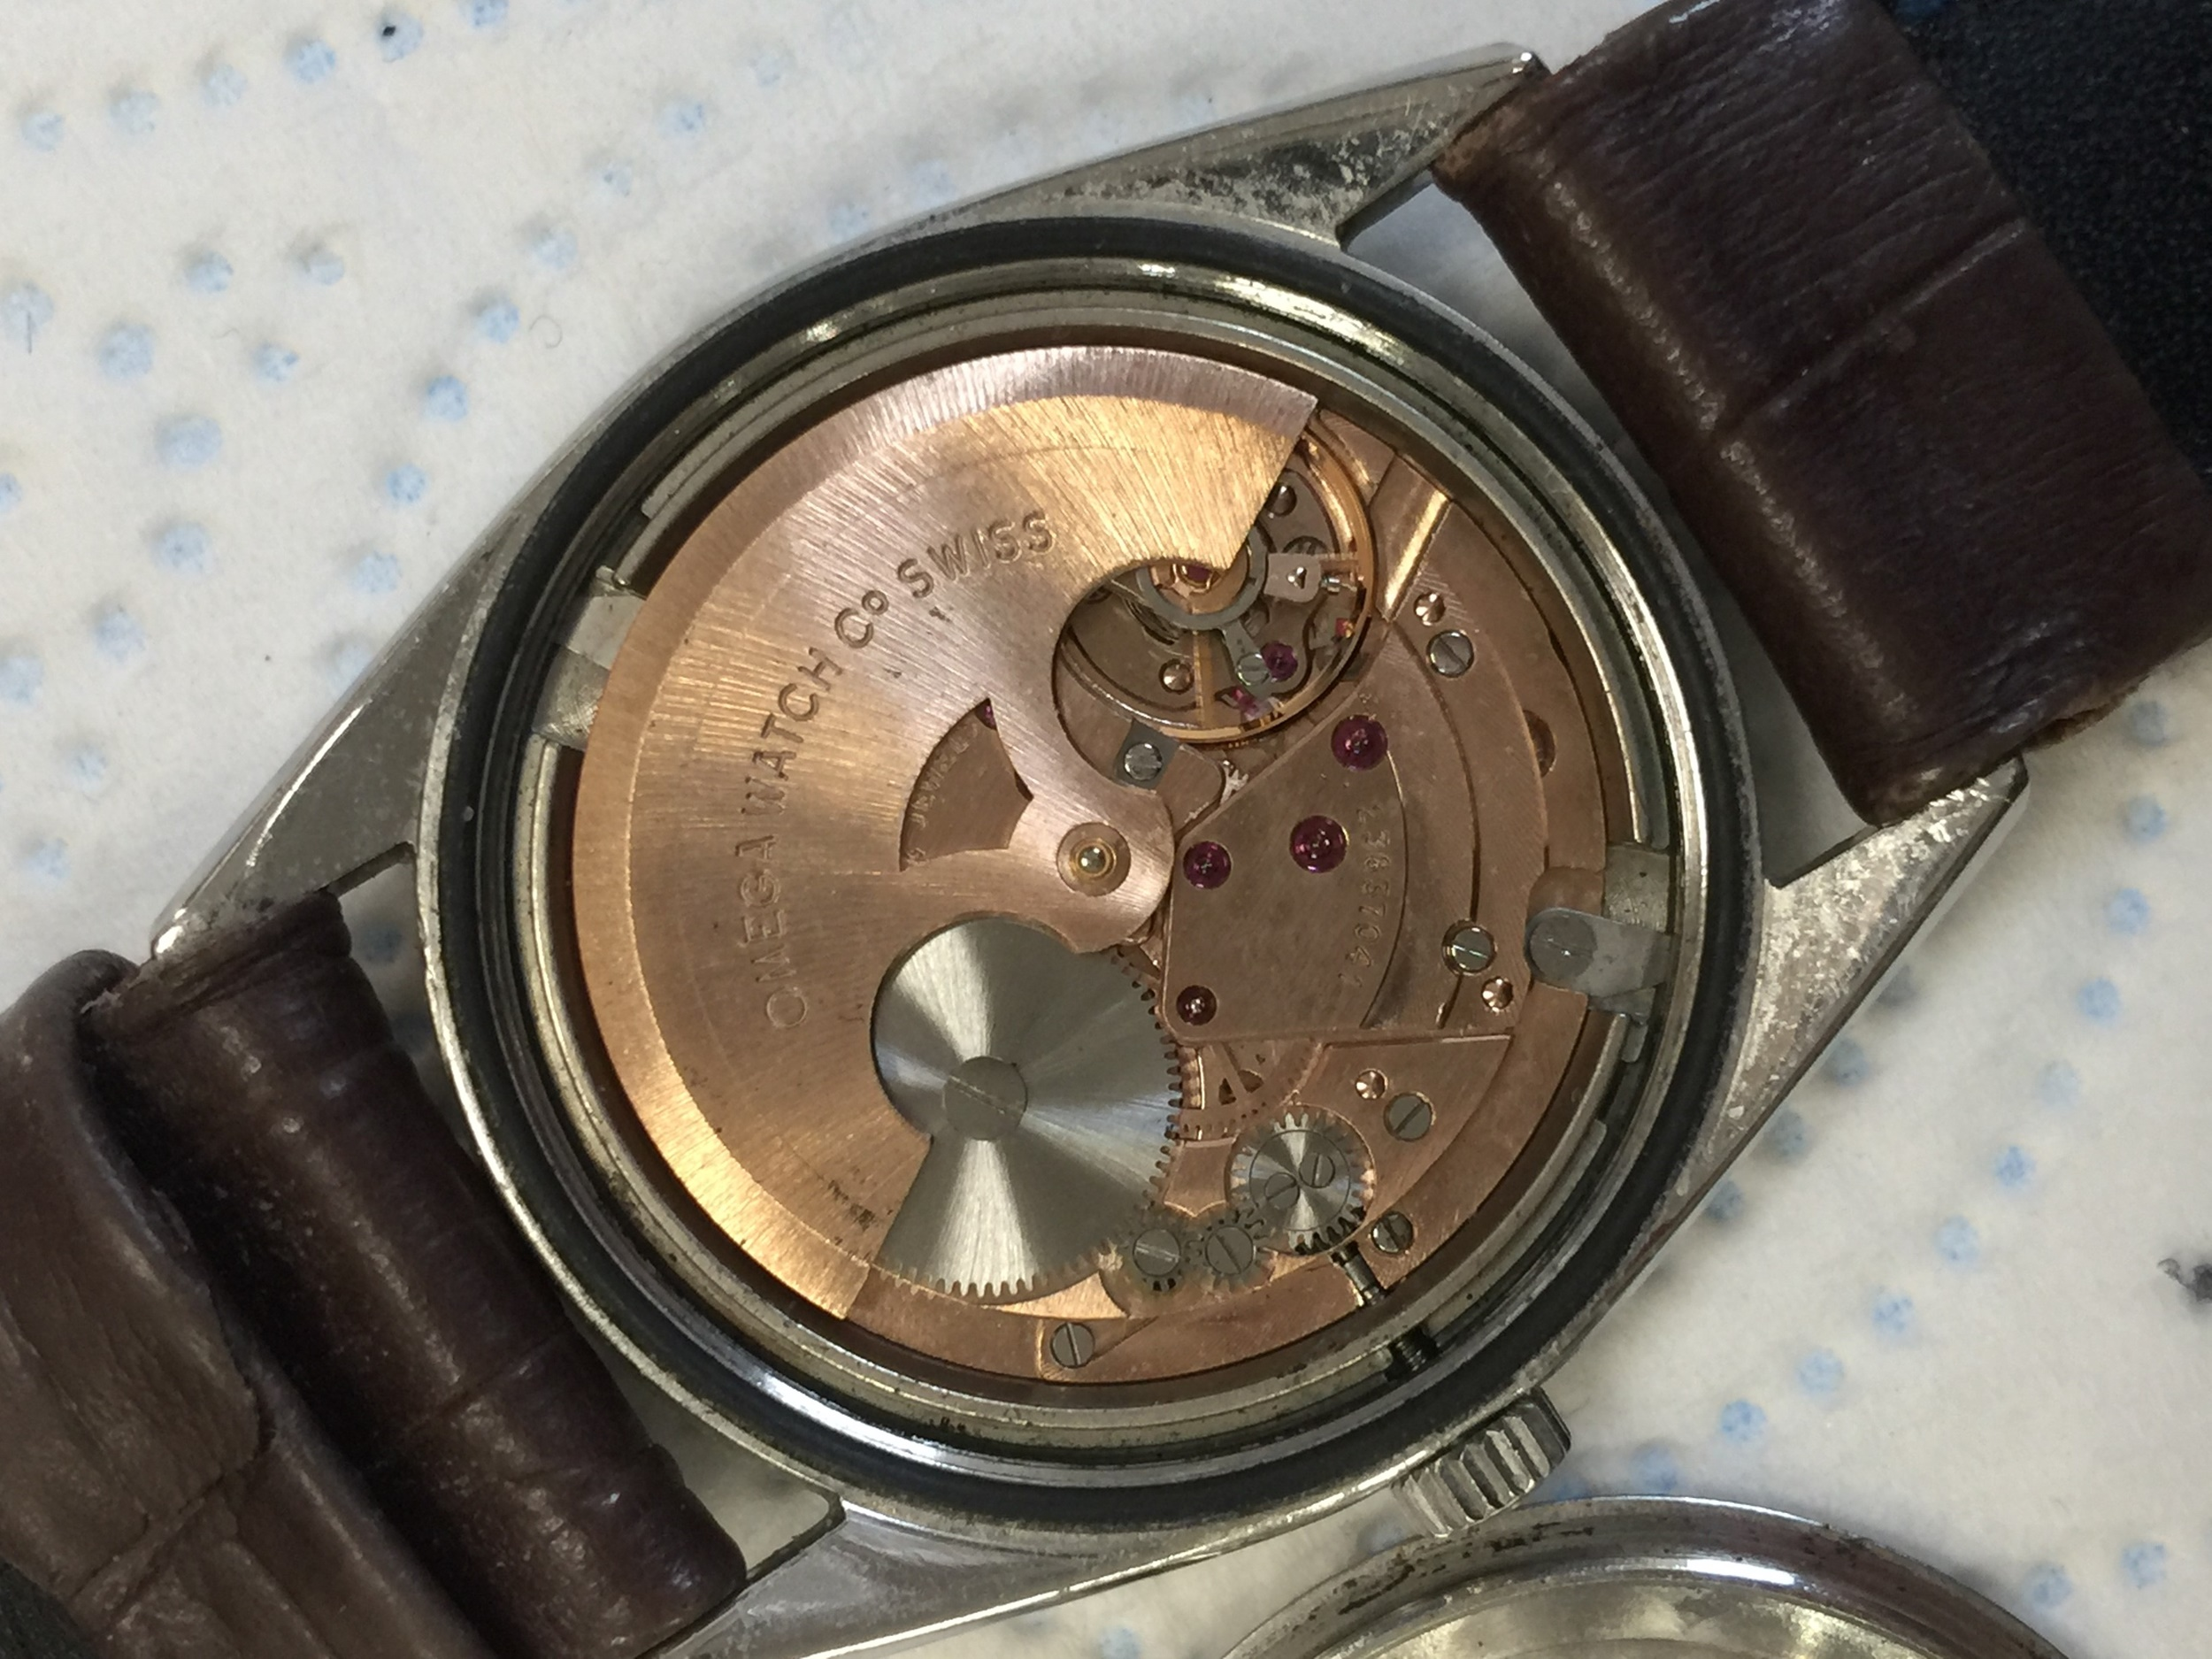 Lot 708 - A GENTLEMAN'S OMEGA CONSTELLATION STAINLESS STEEL AUTOMATIC WRIST WATCH